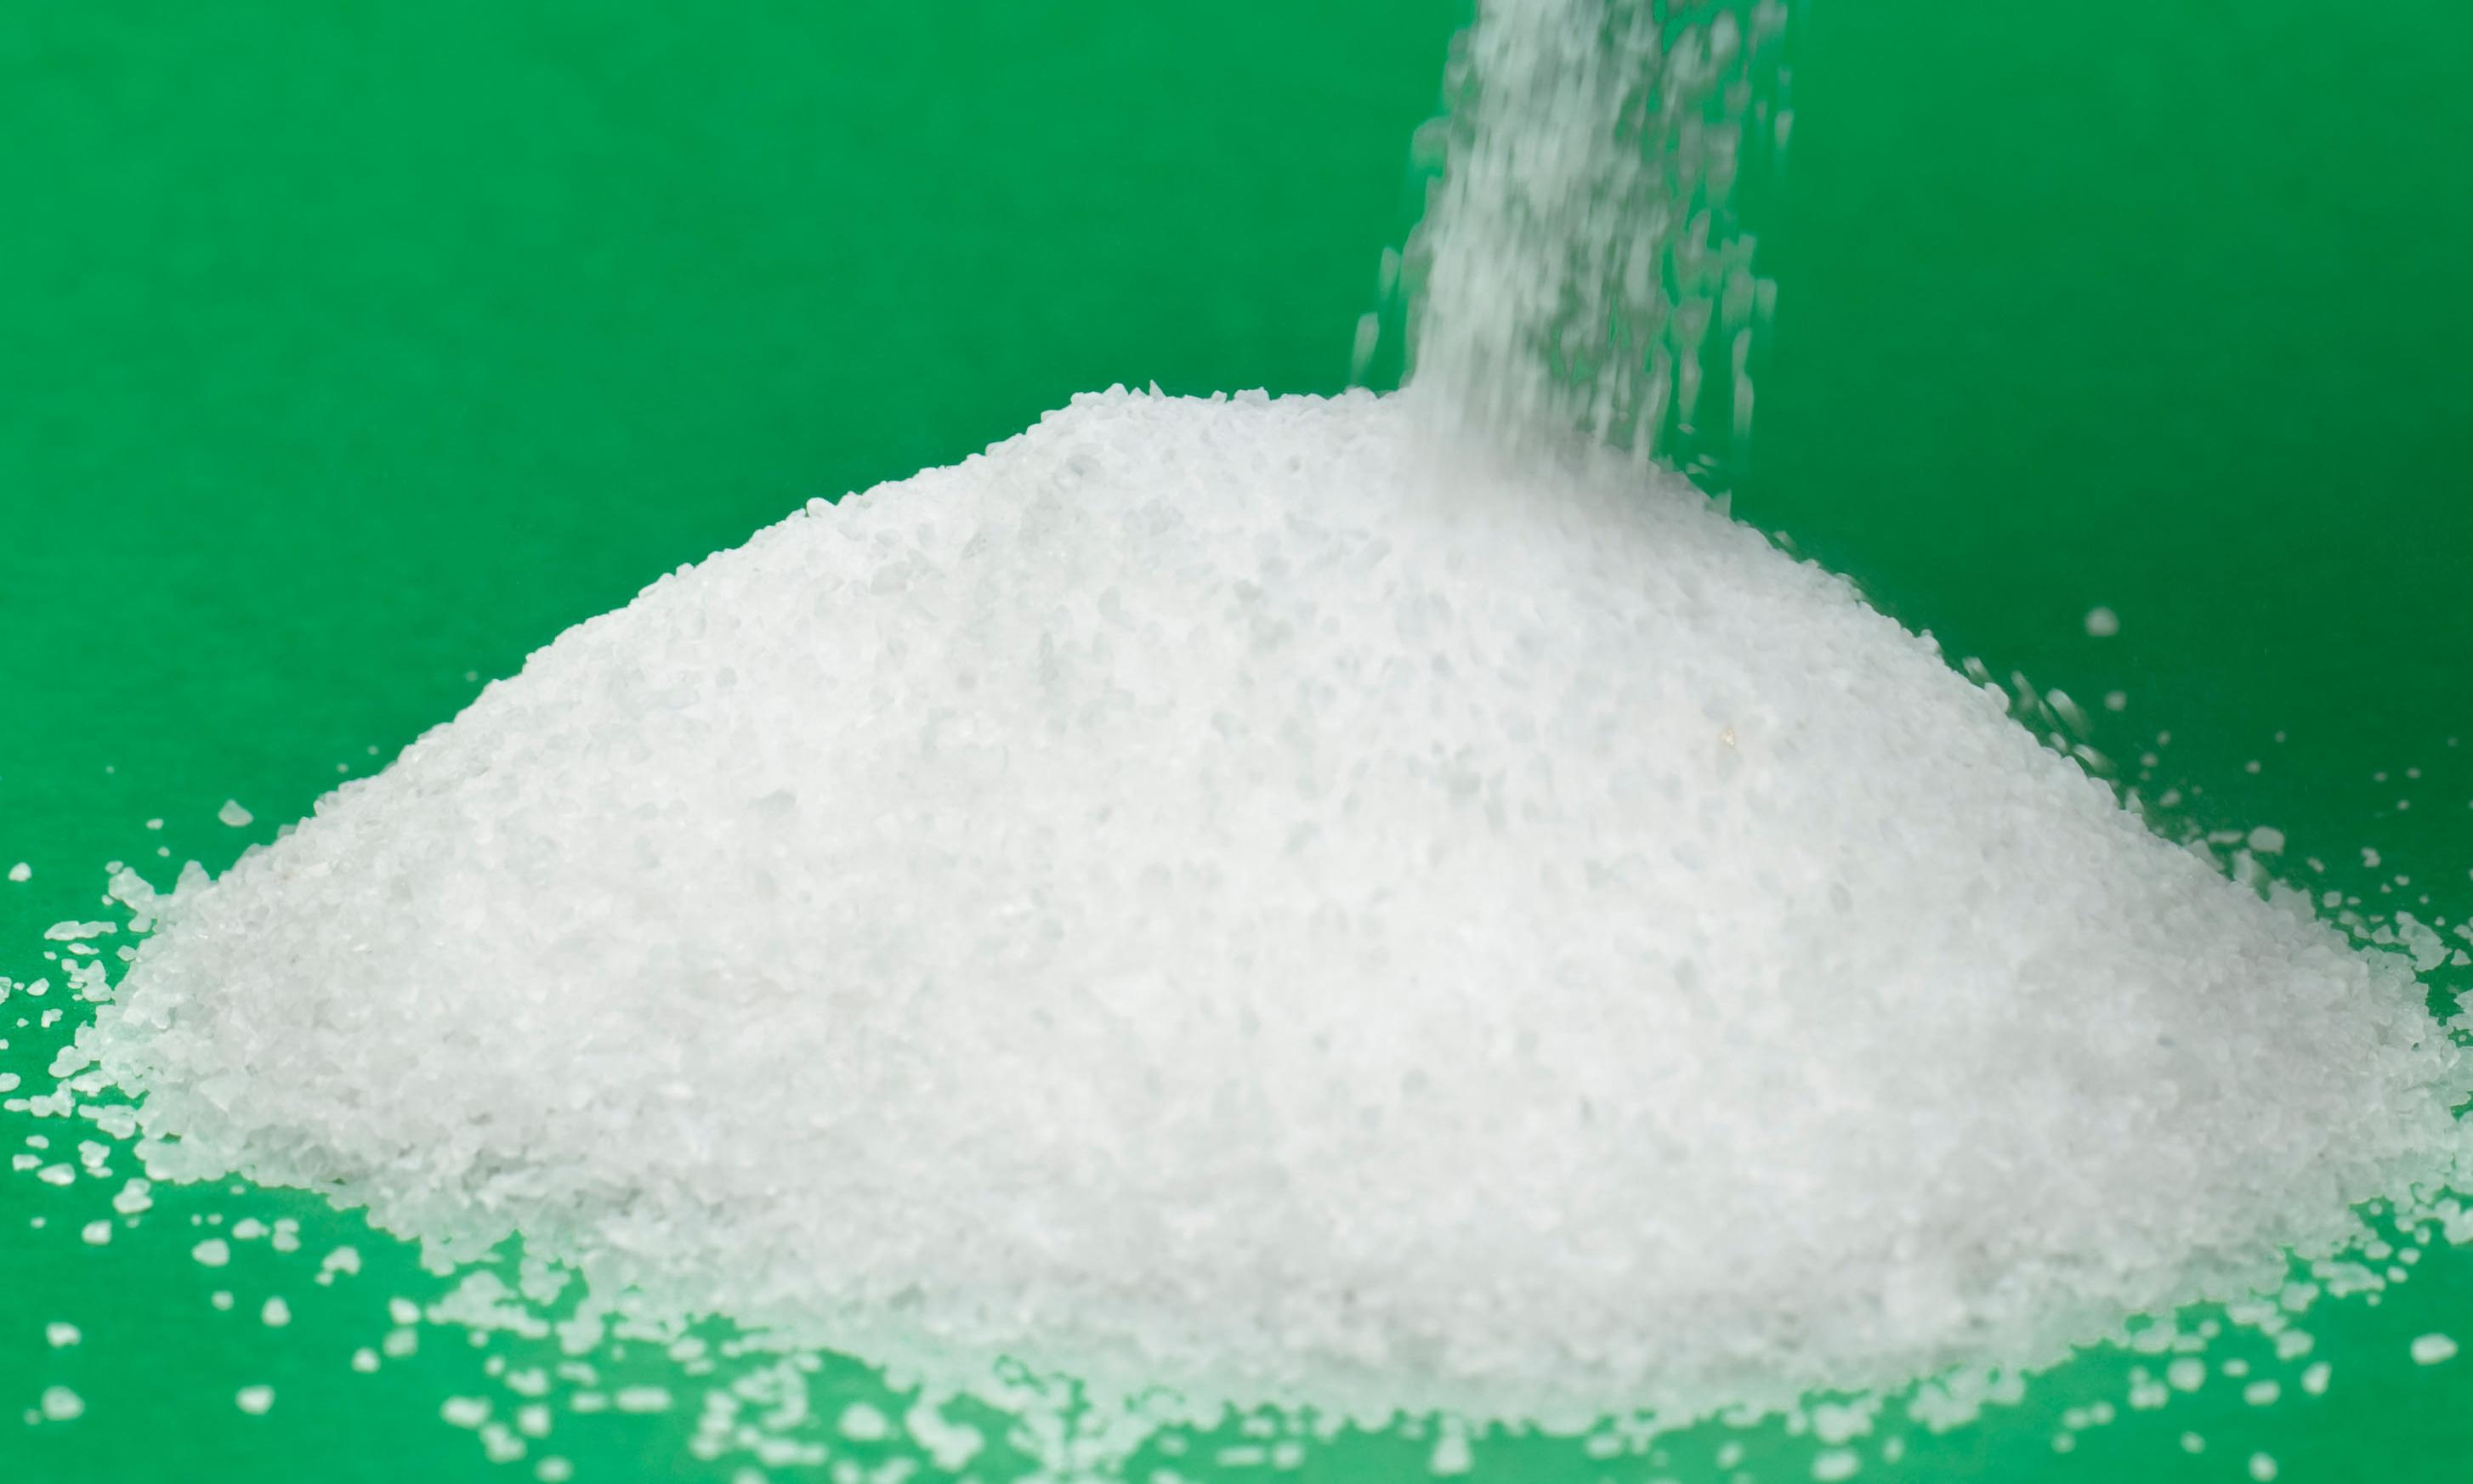 Coalition's voluntary salt limits have been 'public health disaster'